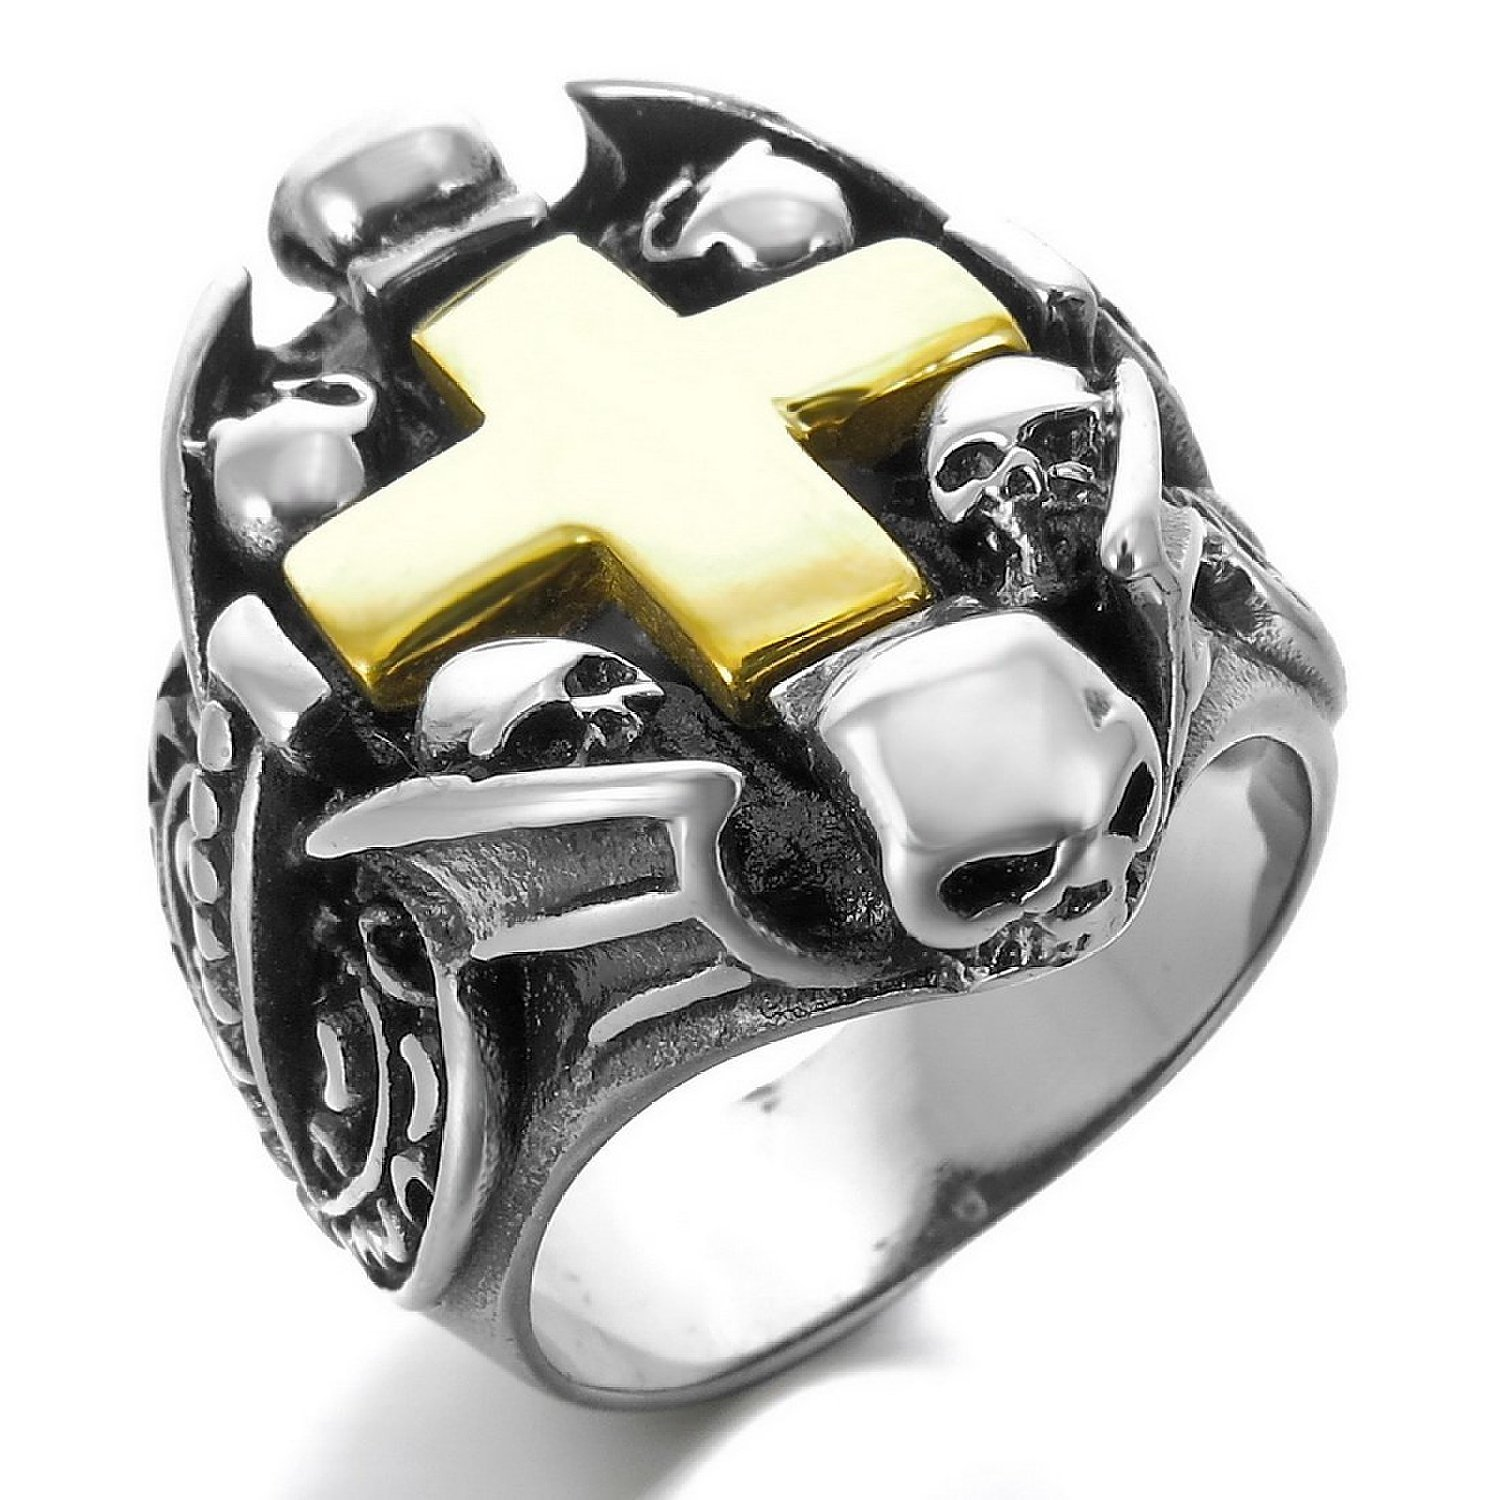 Cheap Bat Ring Jewelry find Bat Ring Jewelry deals on line at